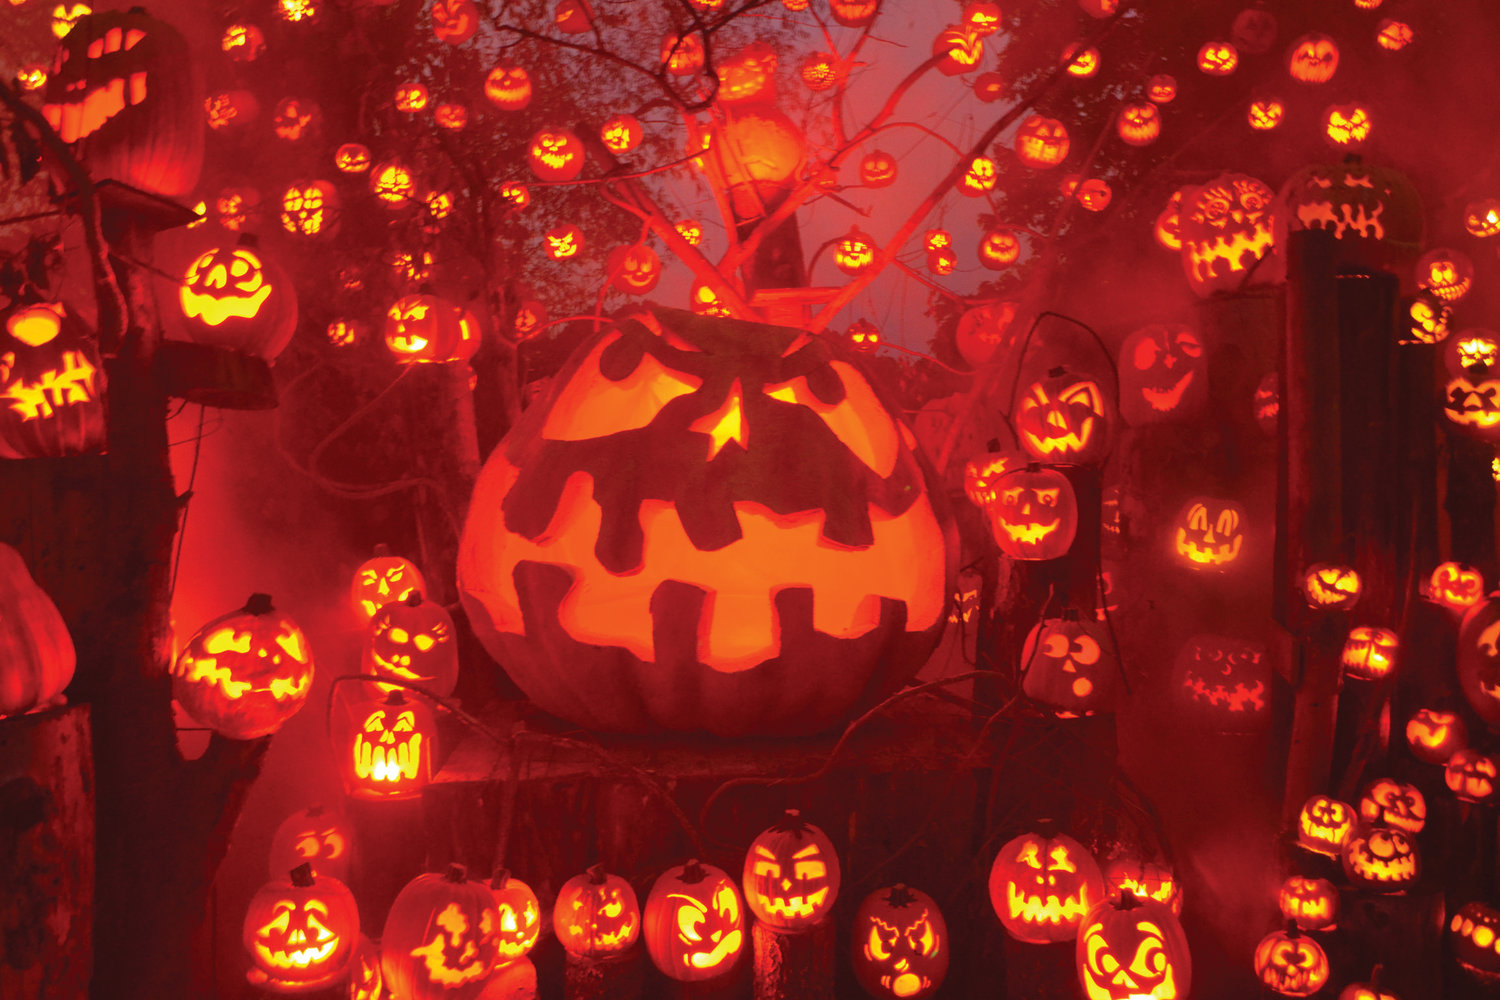 SPECTACULARLY SPOOKY: The annual Jack-O-Lantern Spectacular at Roger Williams Park Zoo is seen in this October photo.